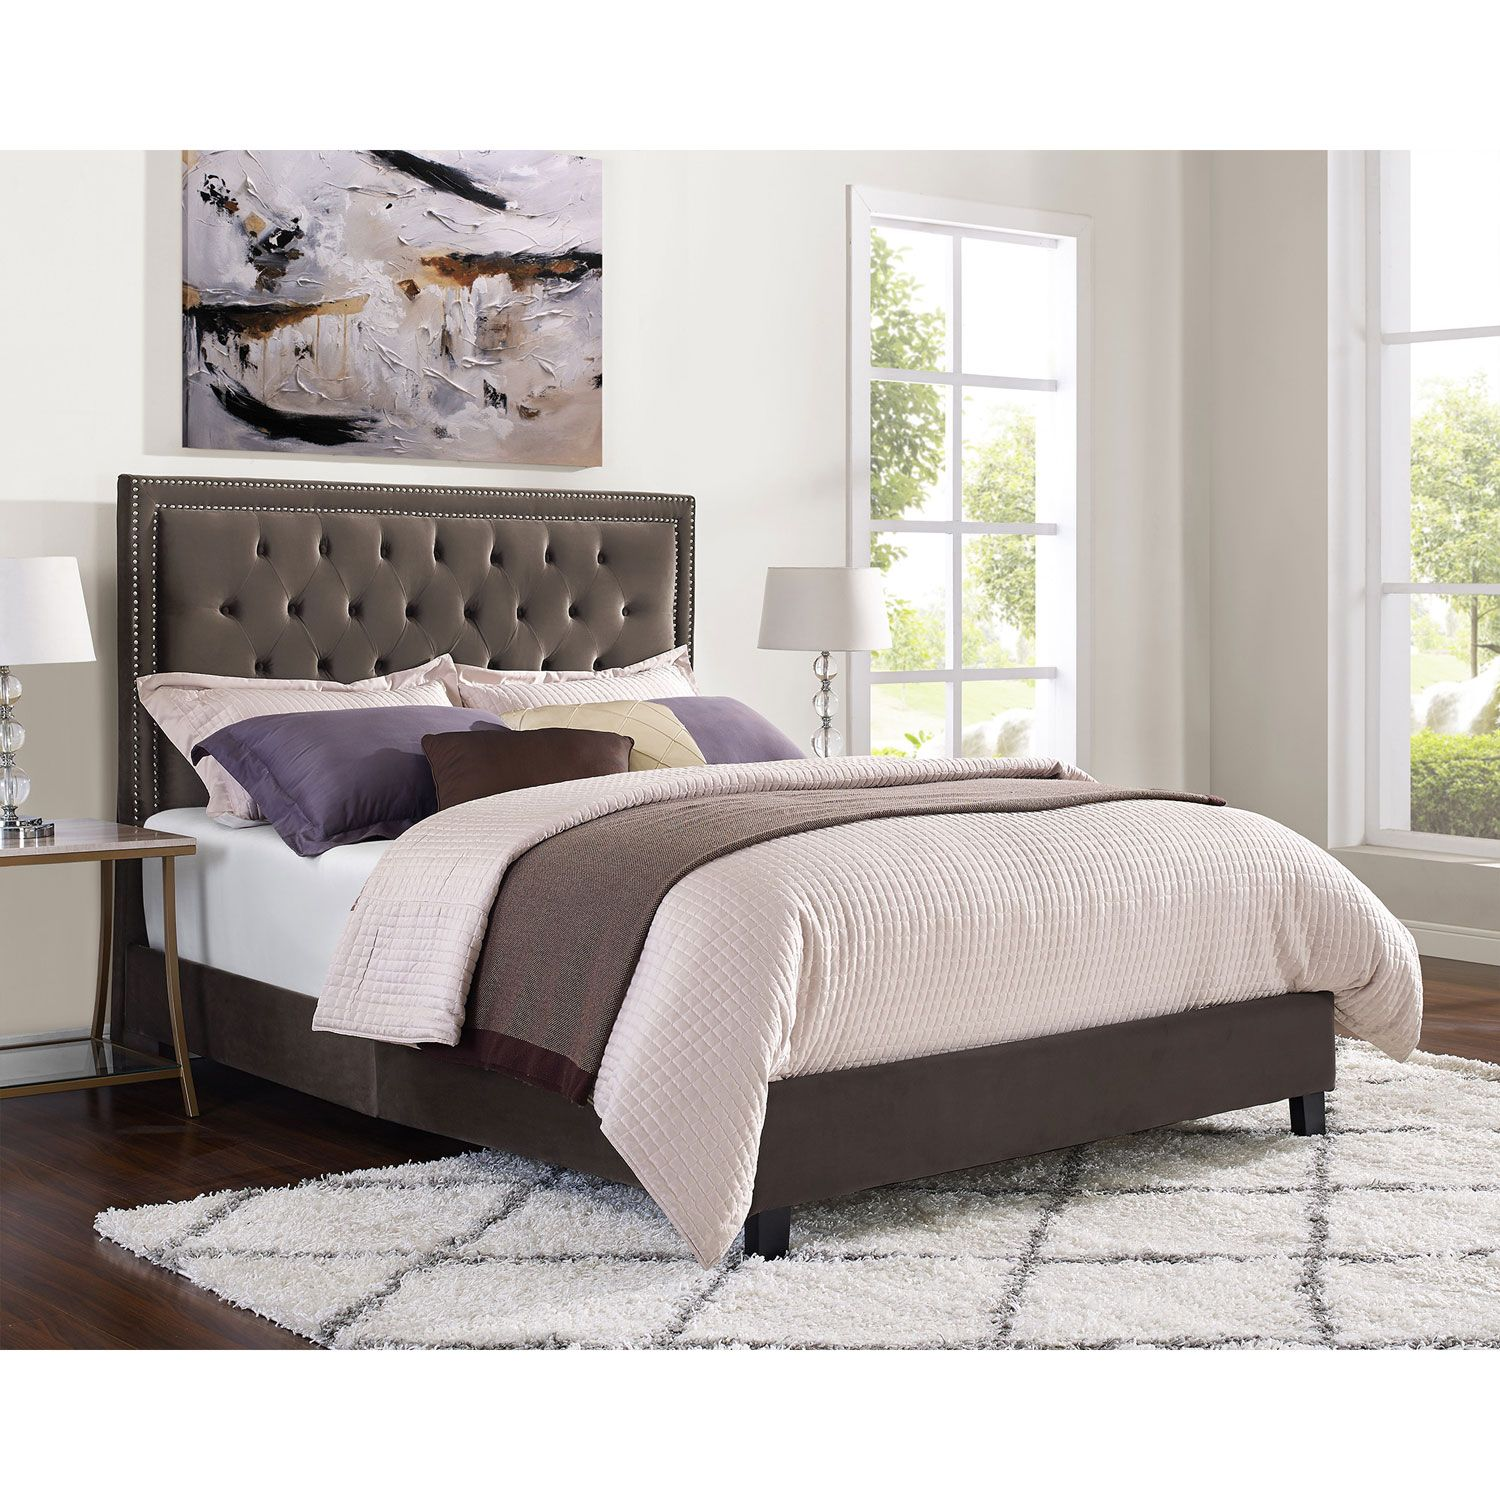 Manhattan 6 Piece Queen Bedroom Set Cherry: Manhattan Contemporary Upholstered Platform Bed